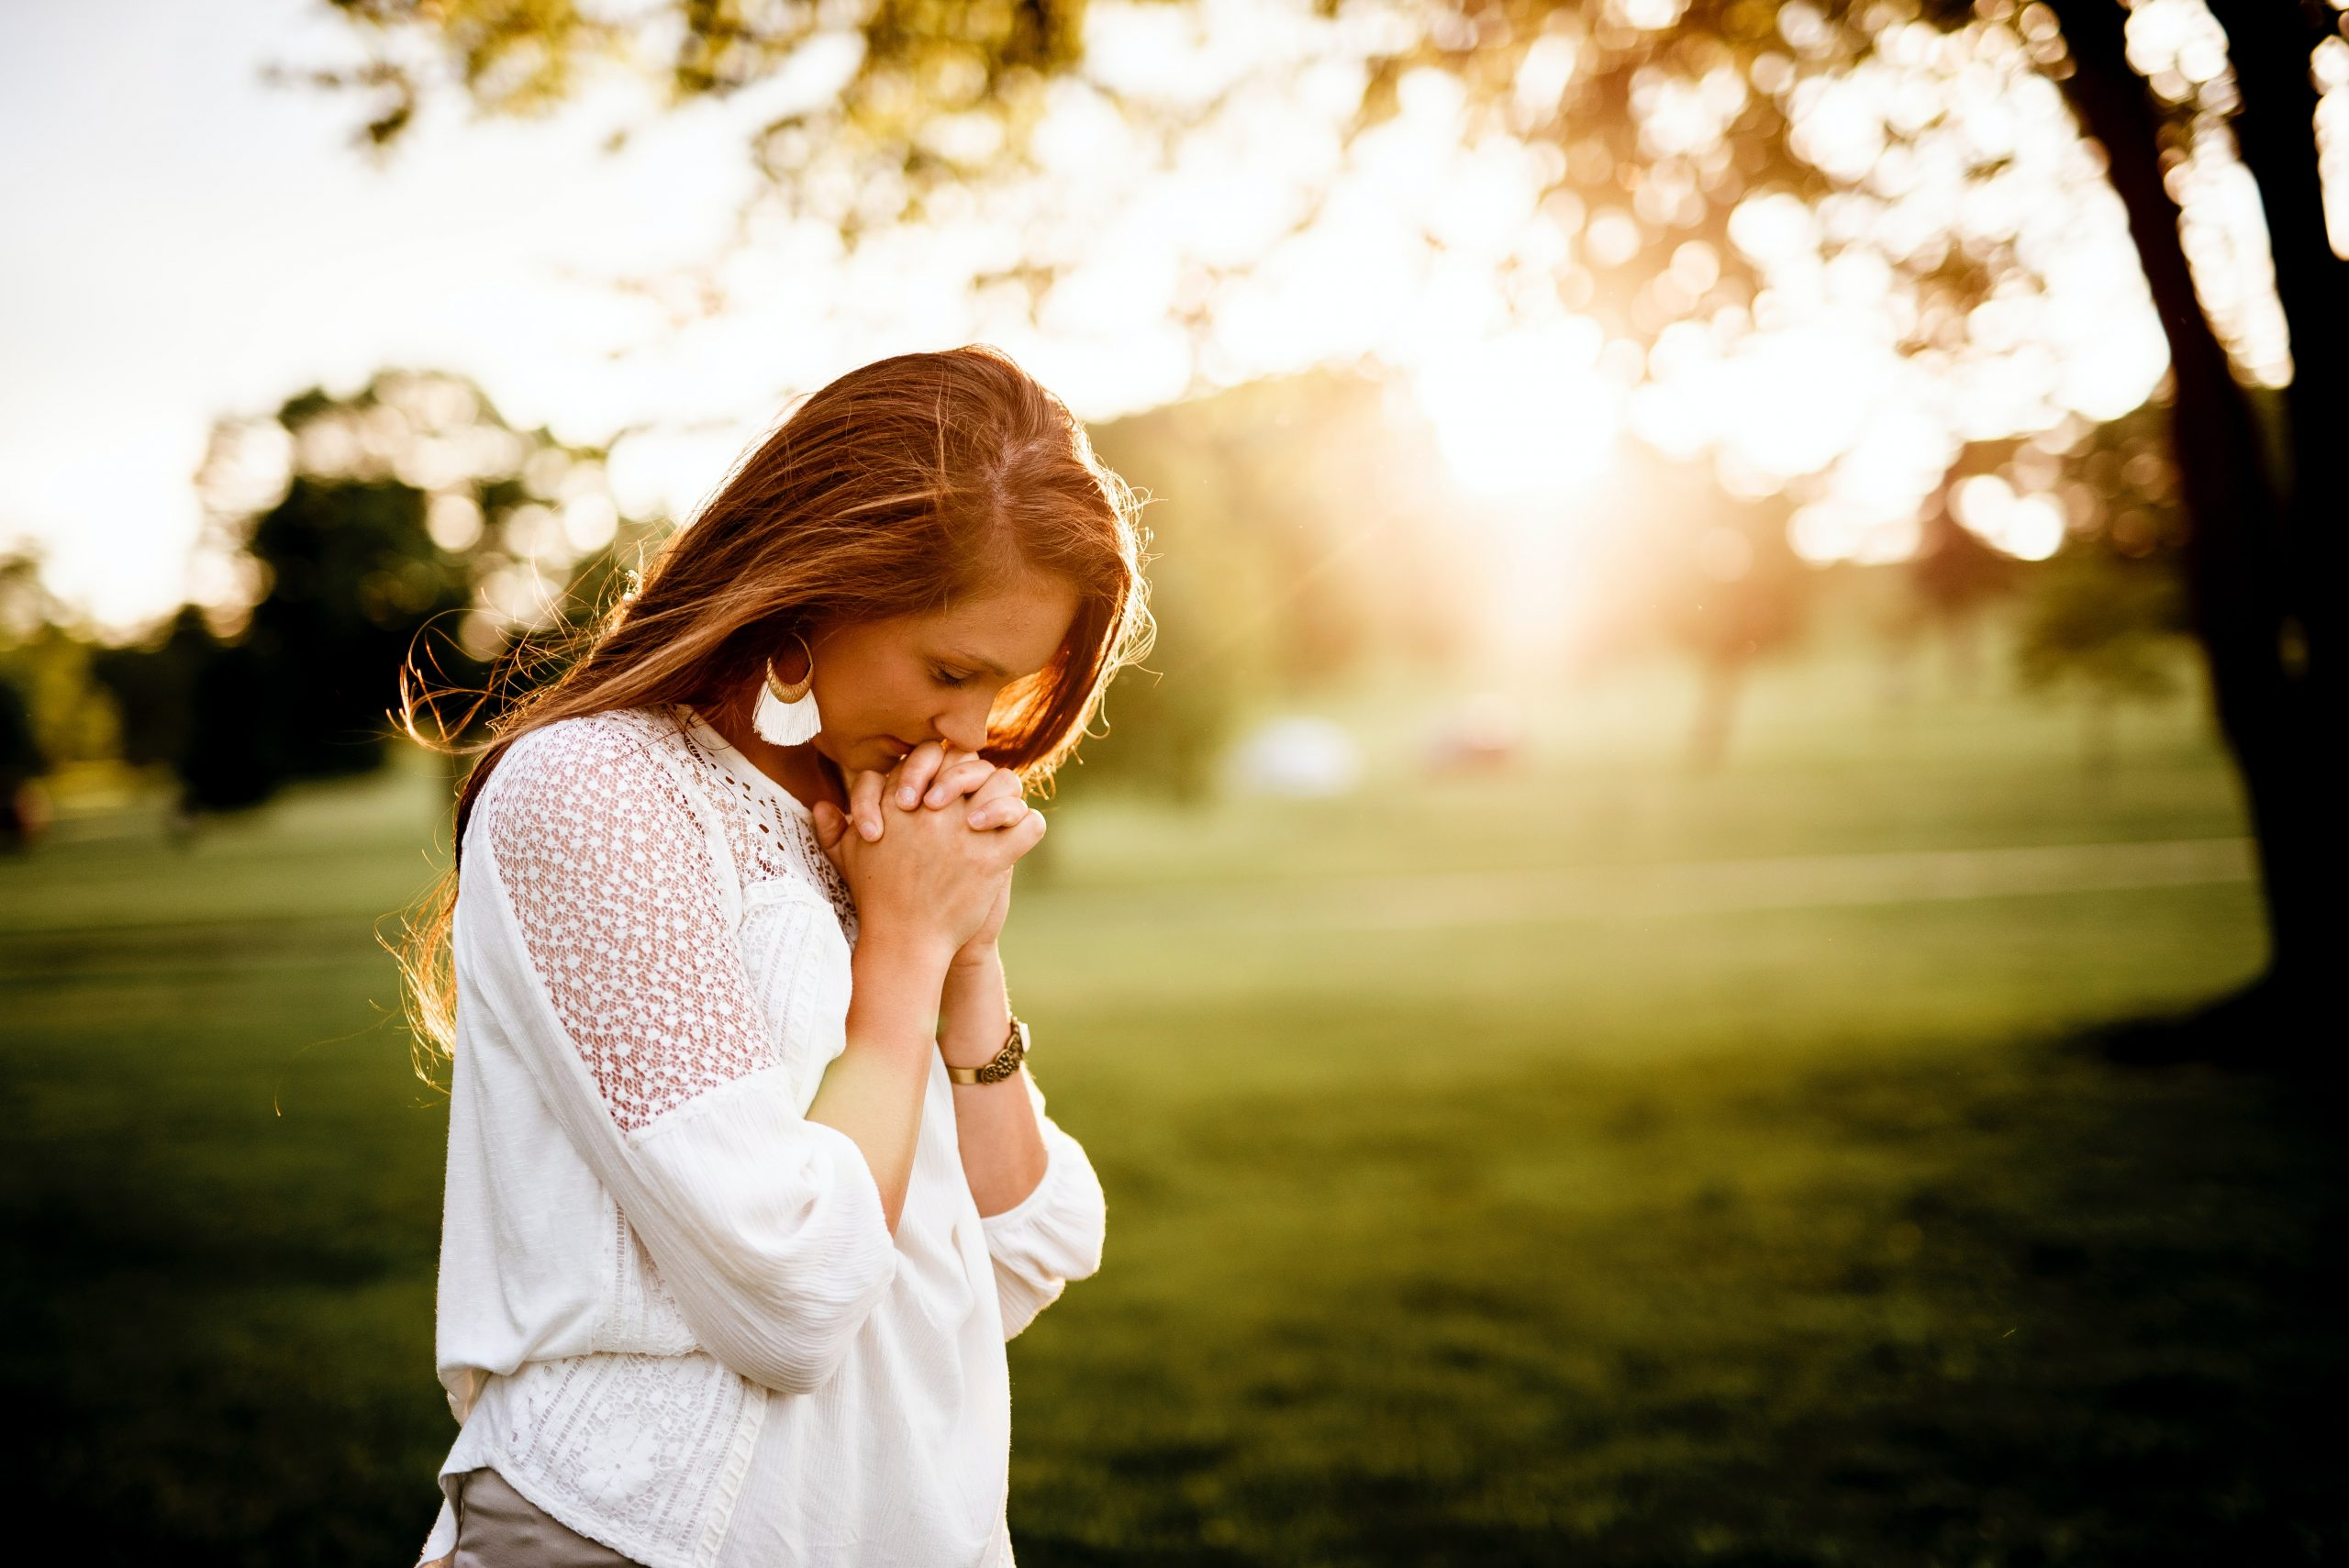 Four Things To Pray For Your Child